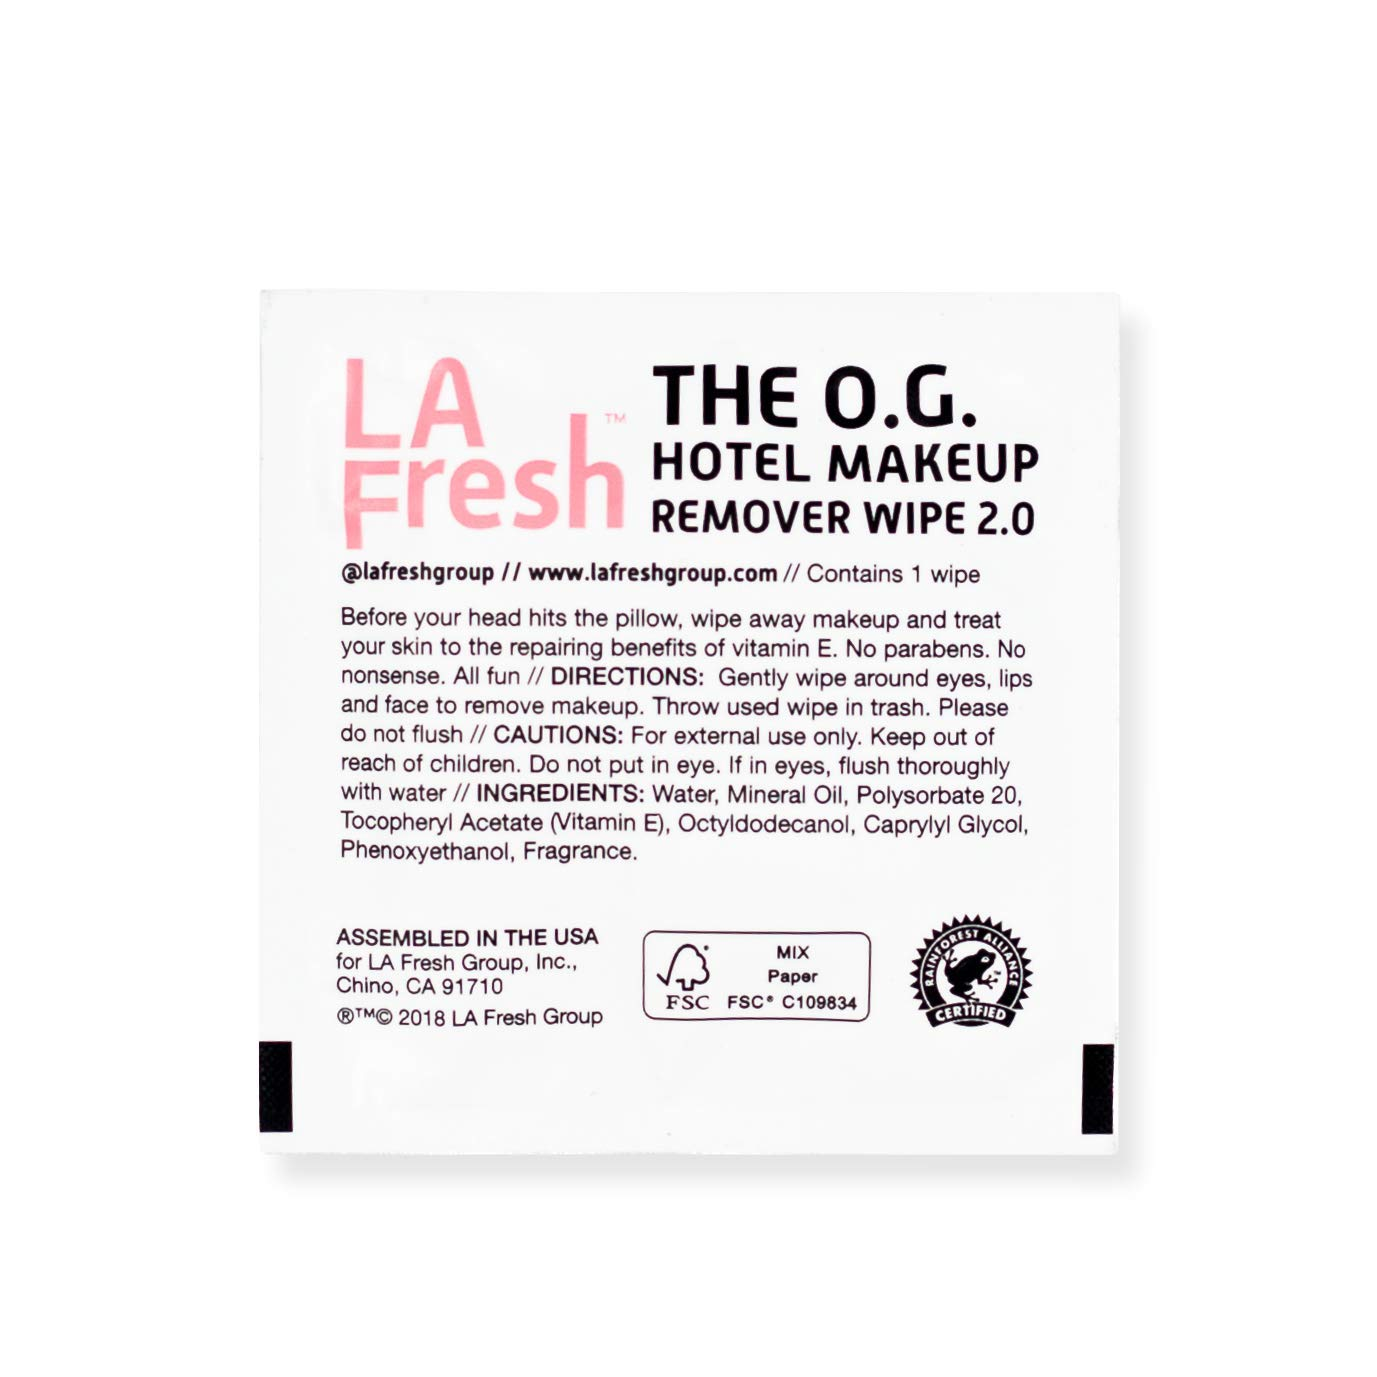 La Fresh Travel Lite Makeup Remover Cleansing Travel Wipes - Natural, Biodegradable, Waterproof, Facial Towelettes With Vitamin E - Individually Wrapped & Sealed (Pack of 200) by La Fresh (Image #4)